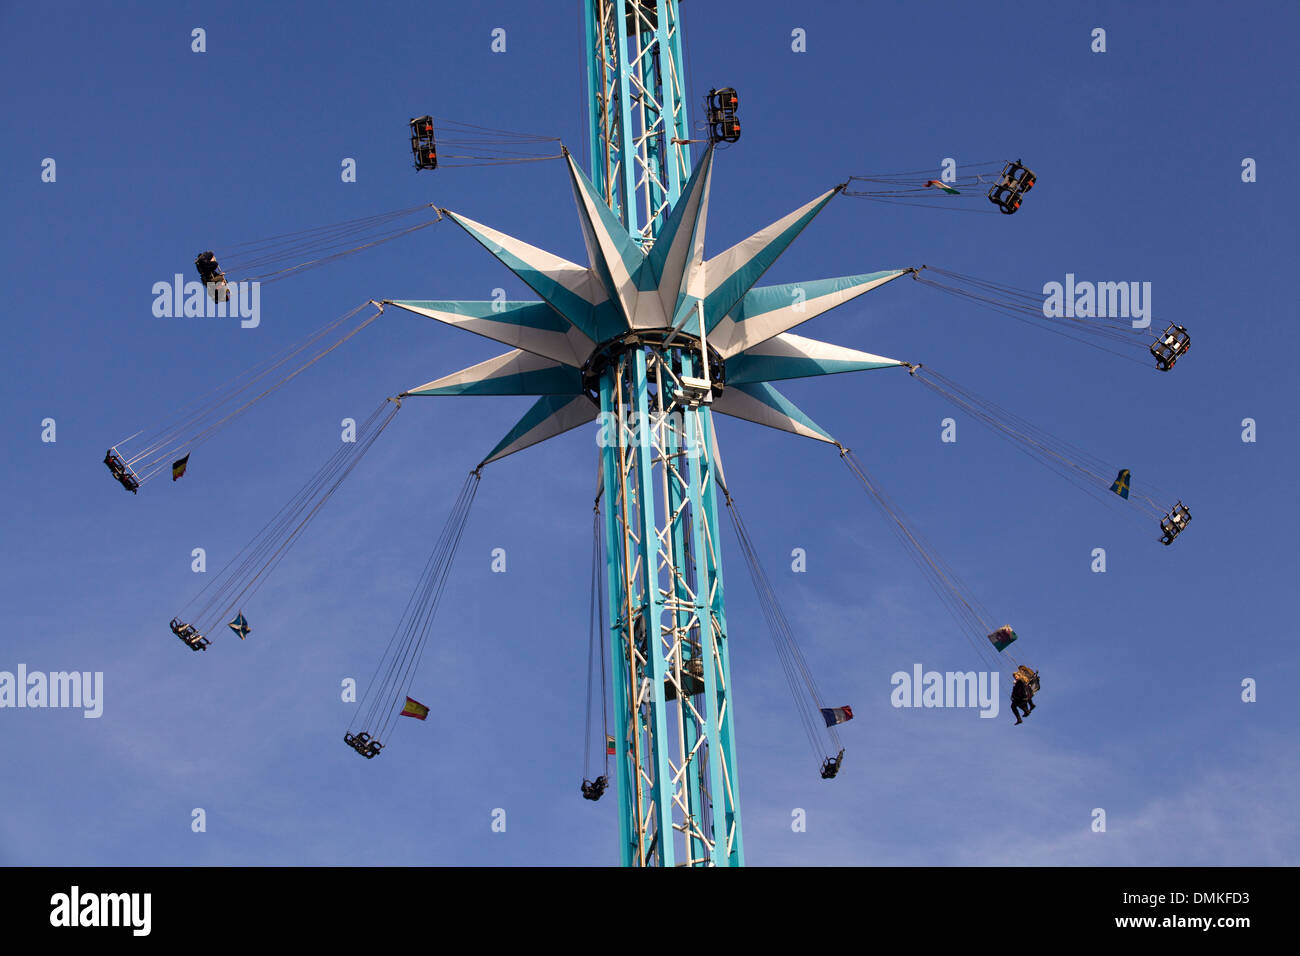 suspended chairs Carousel high in the sky Fairground Ride - Stock Image